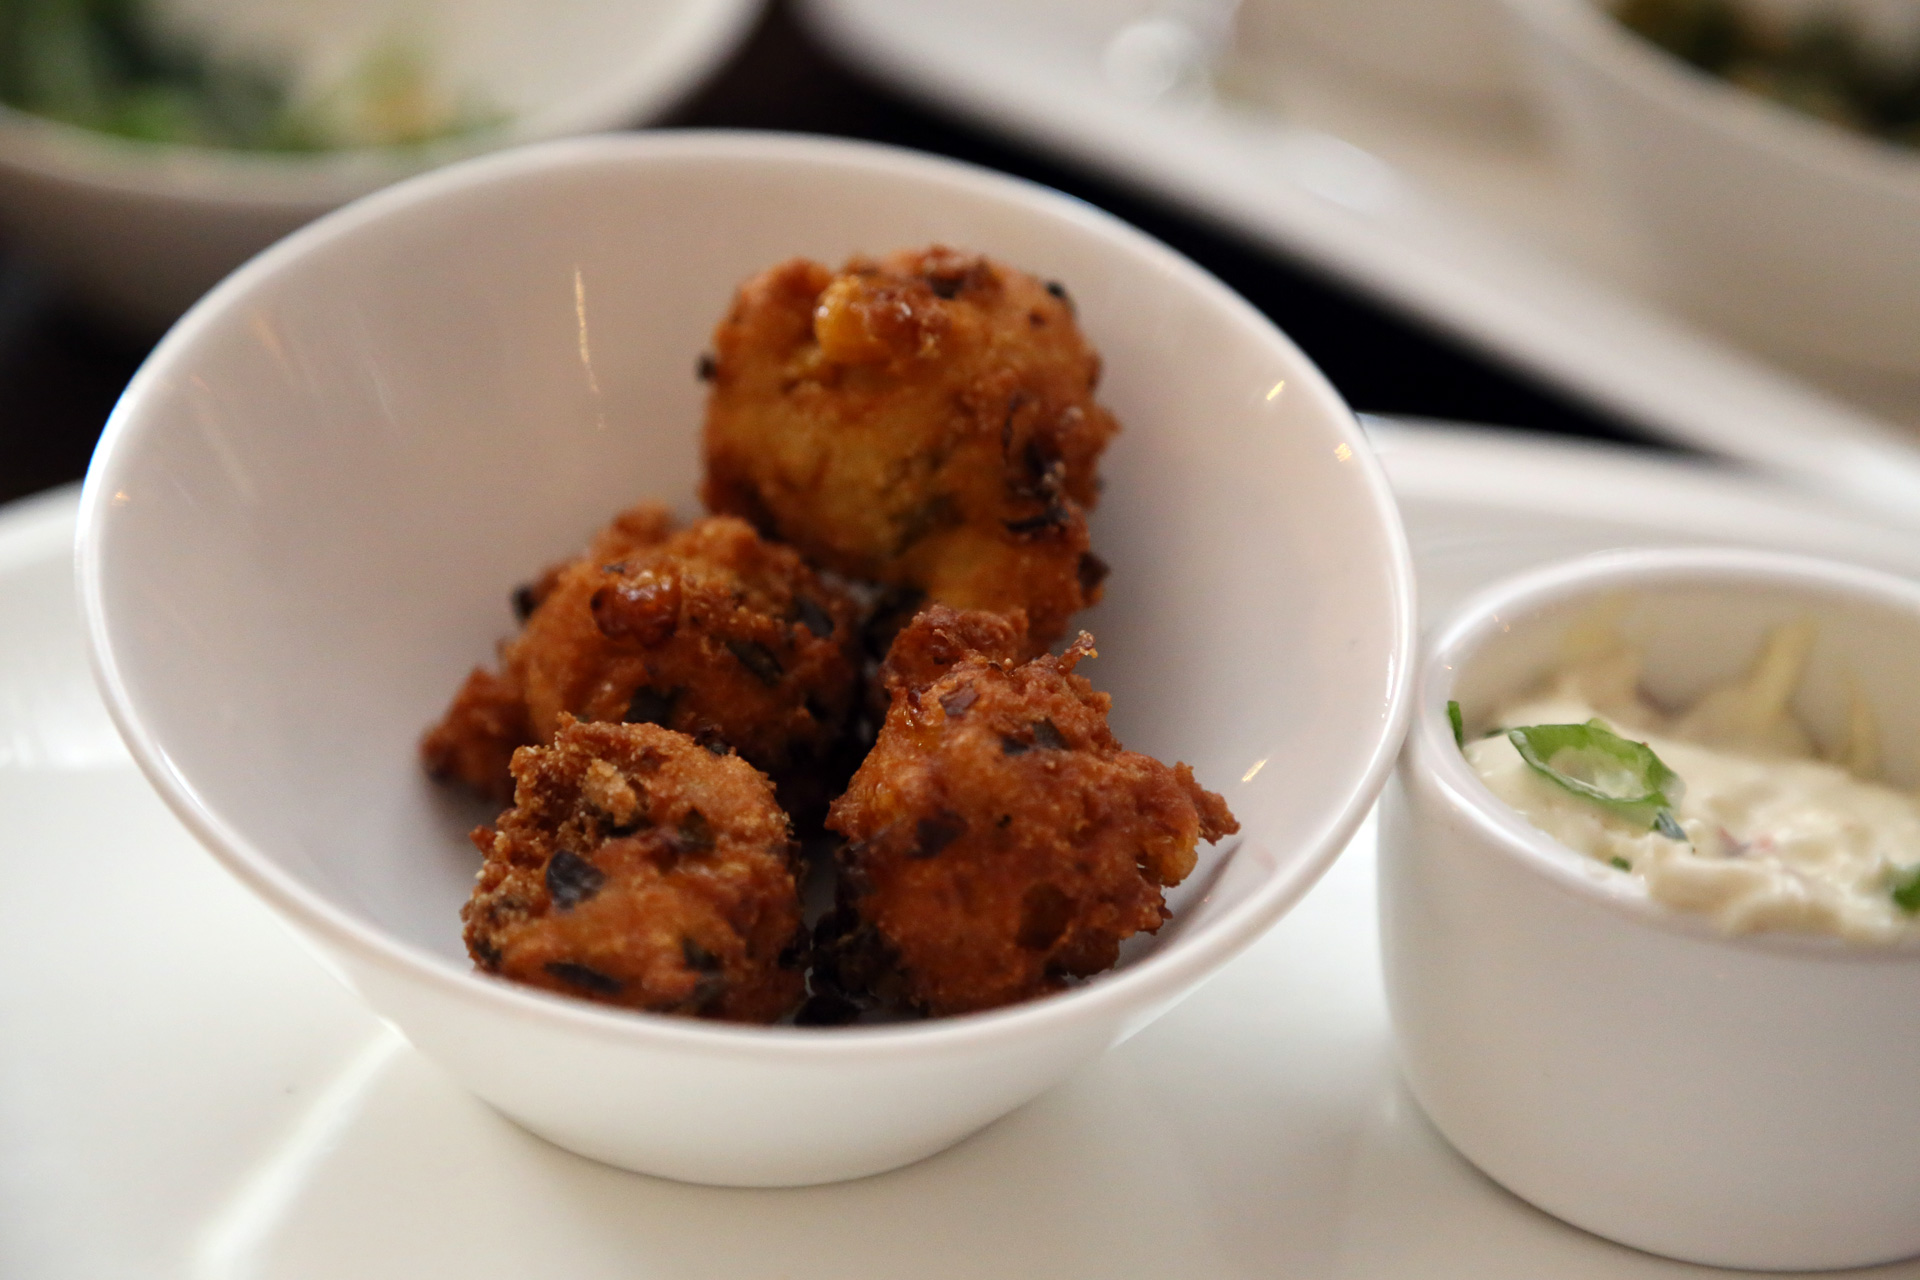 Corn and Smoked Chili Hush Puppies at Scopo Divino